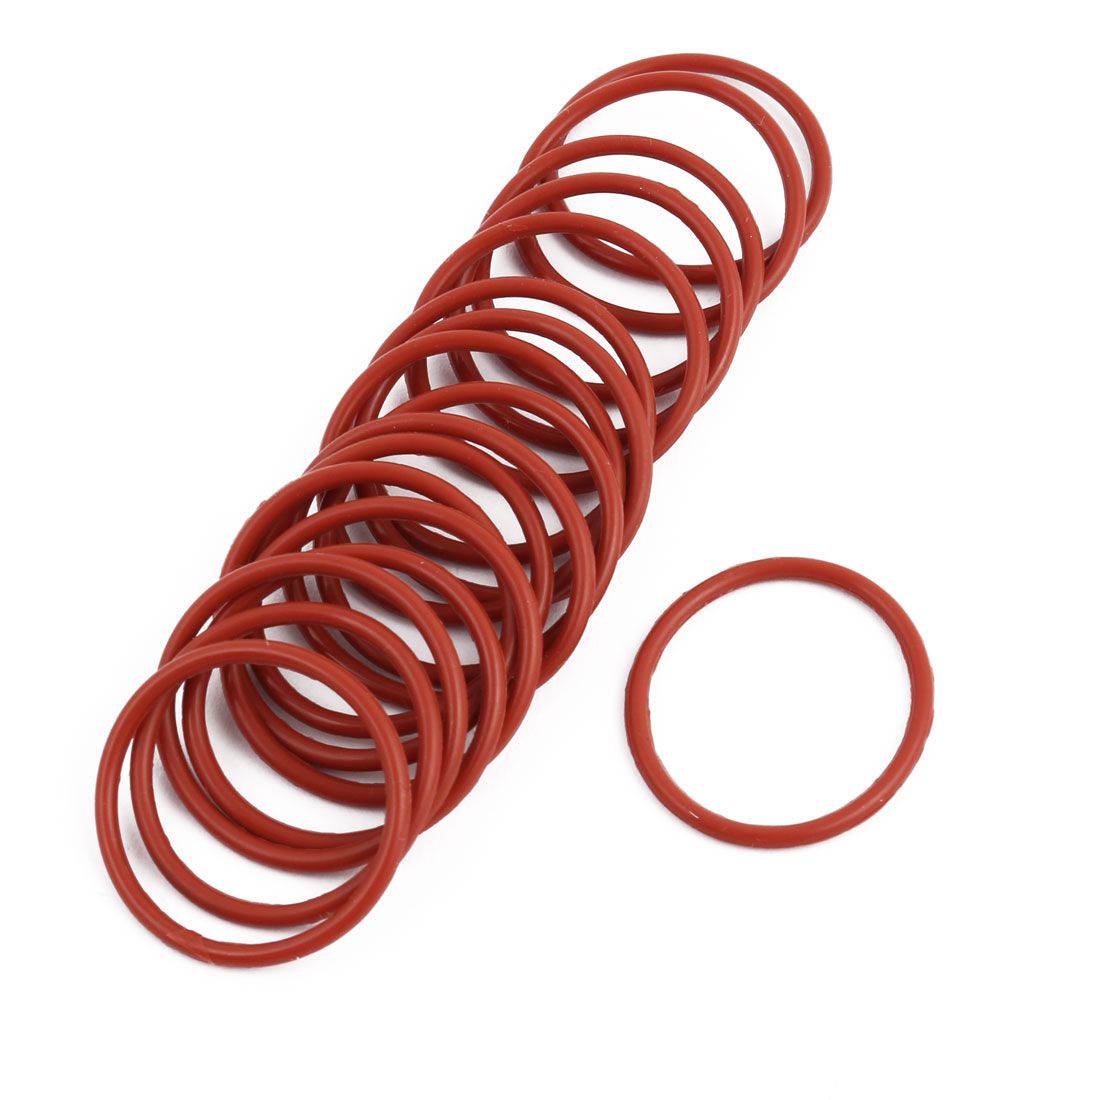 20pcs Red Round Nitrile Butadiene Rubber NBR O-Ring 27mm OD 1.9mm Width